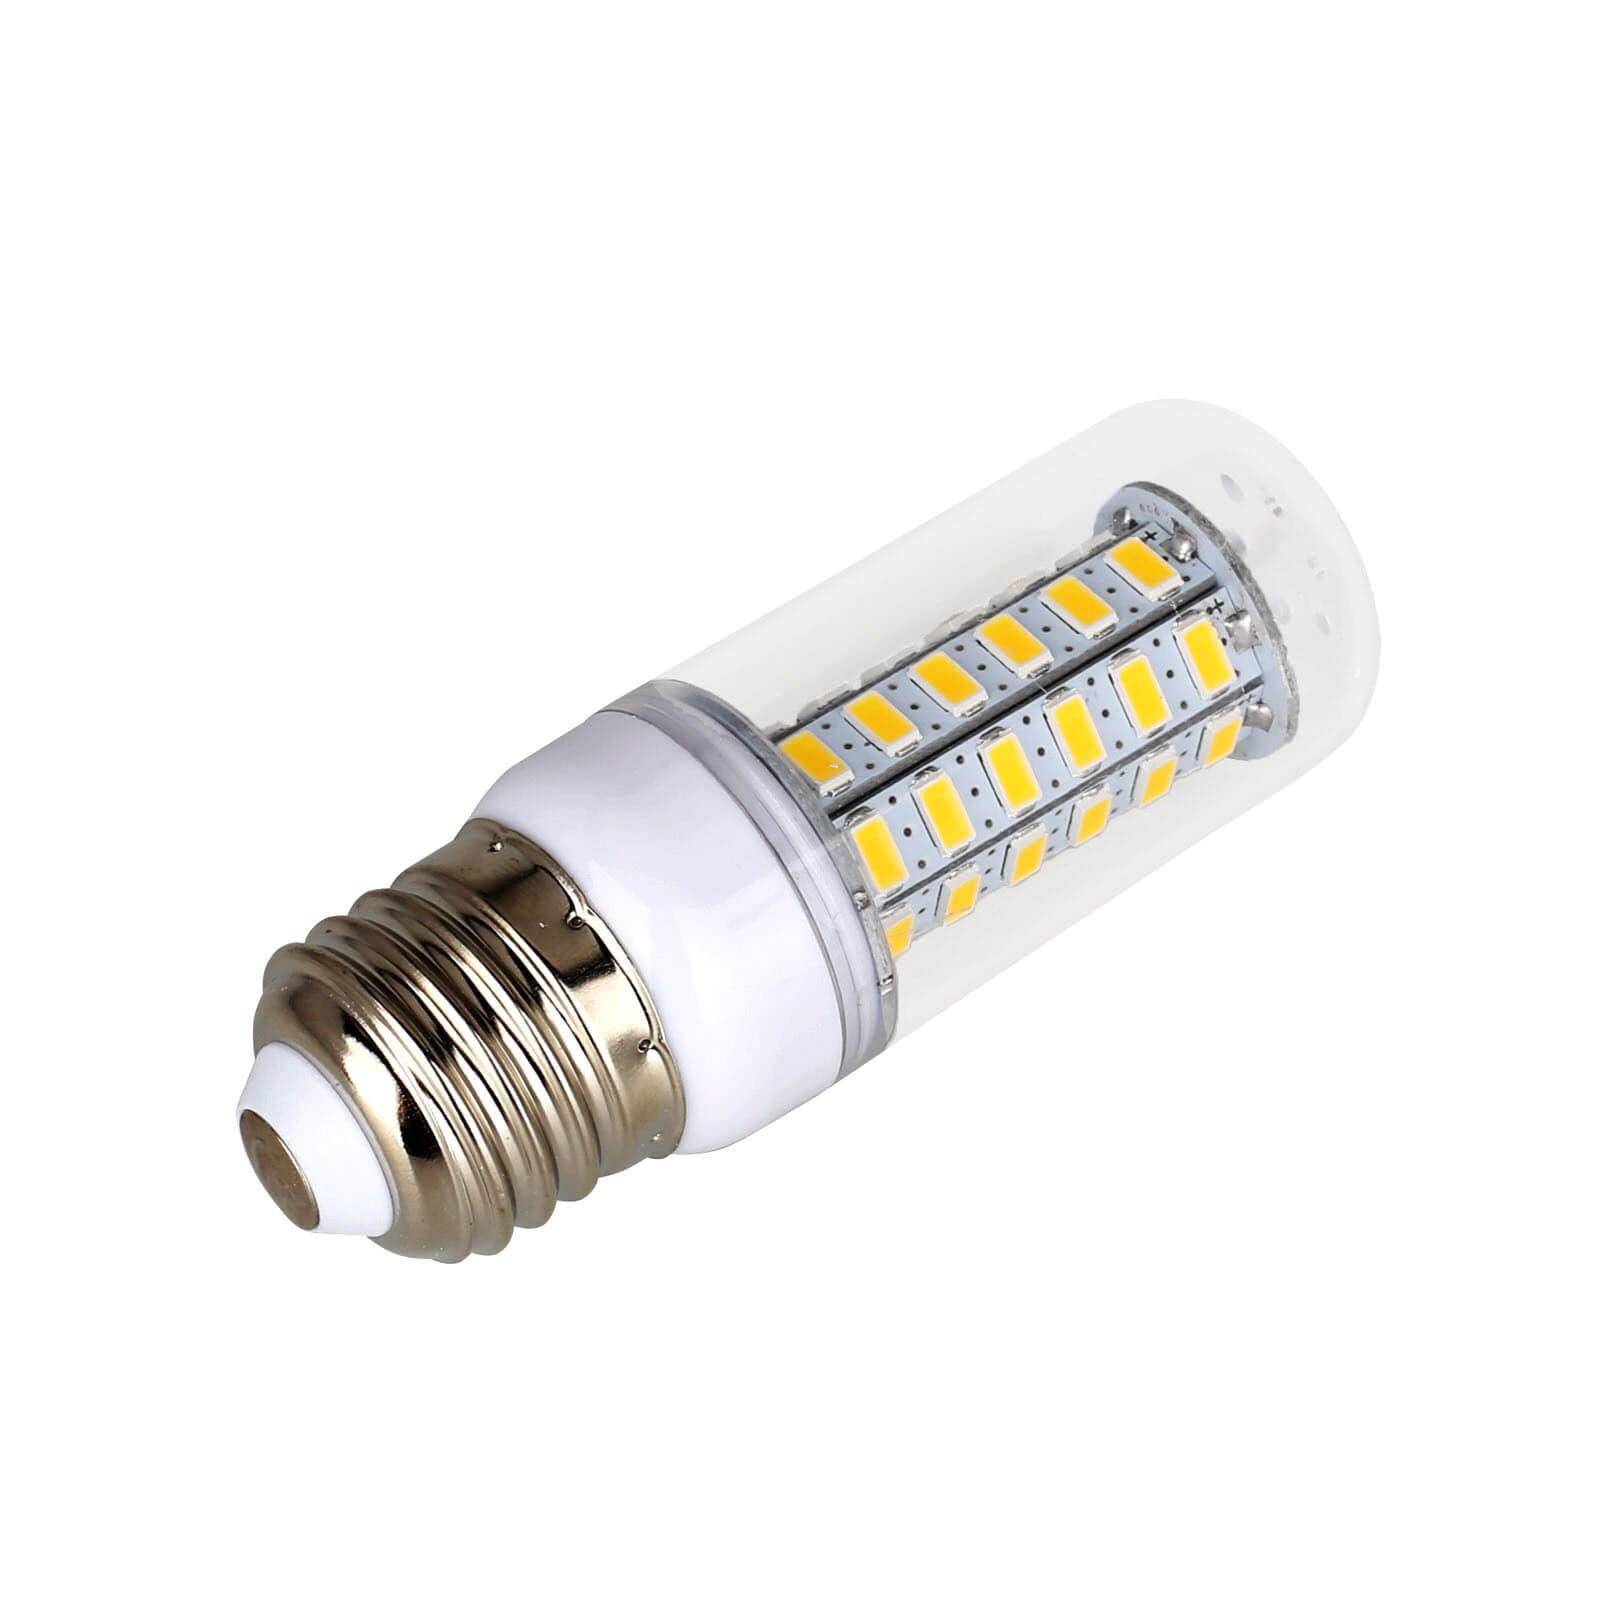 12W Warm White LED Light Bulb 60W Equivalent E26